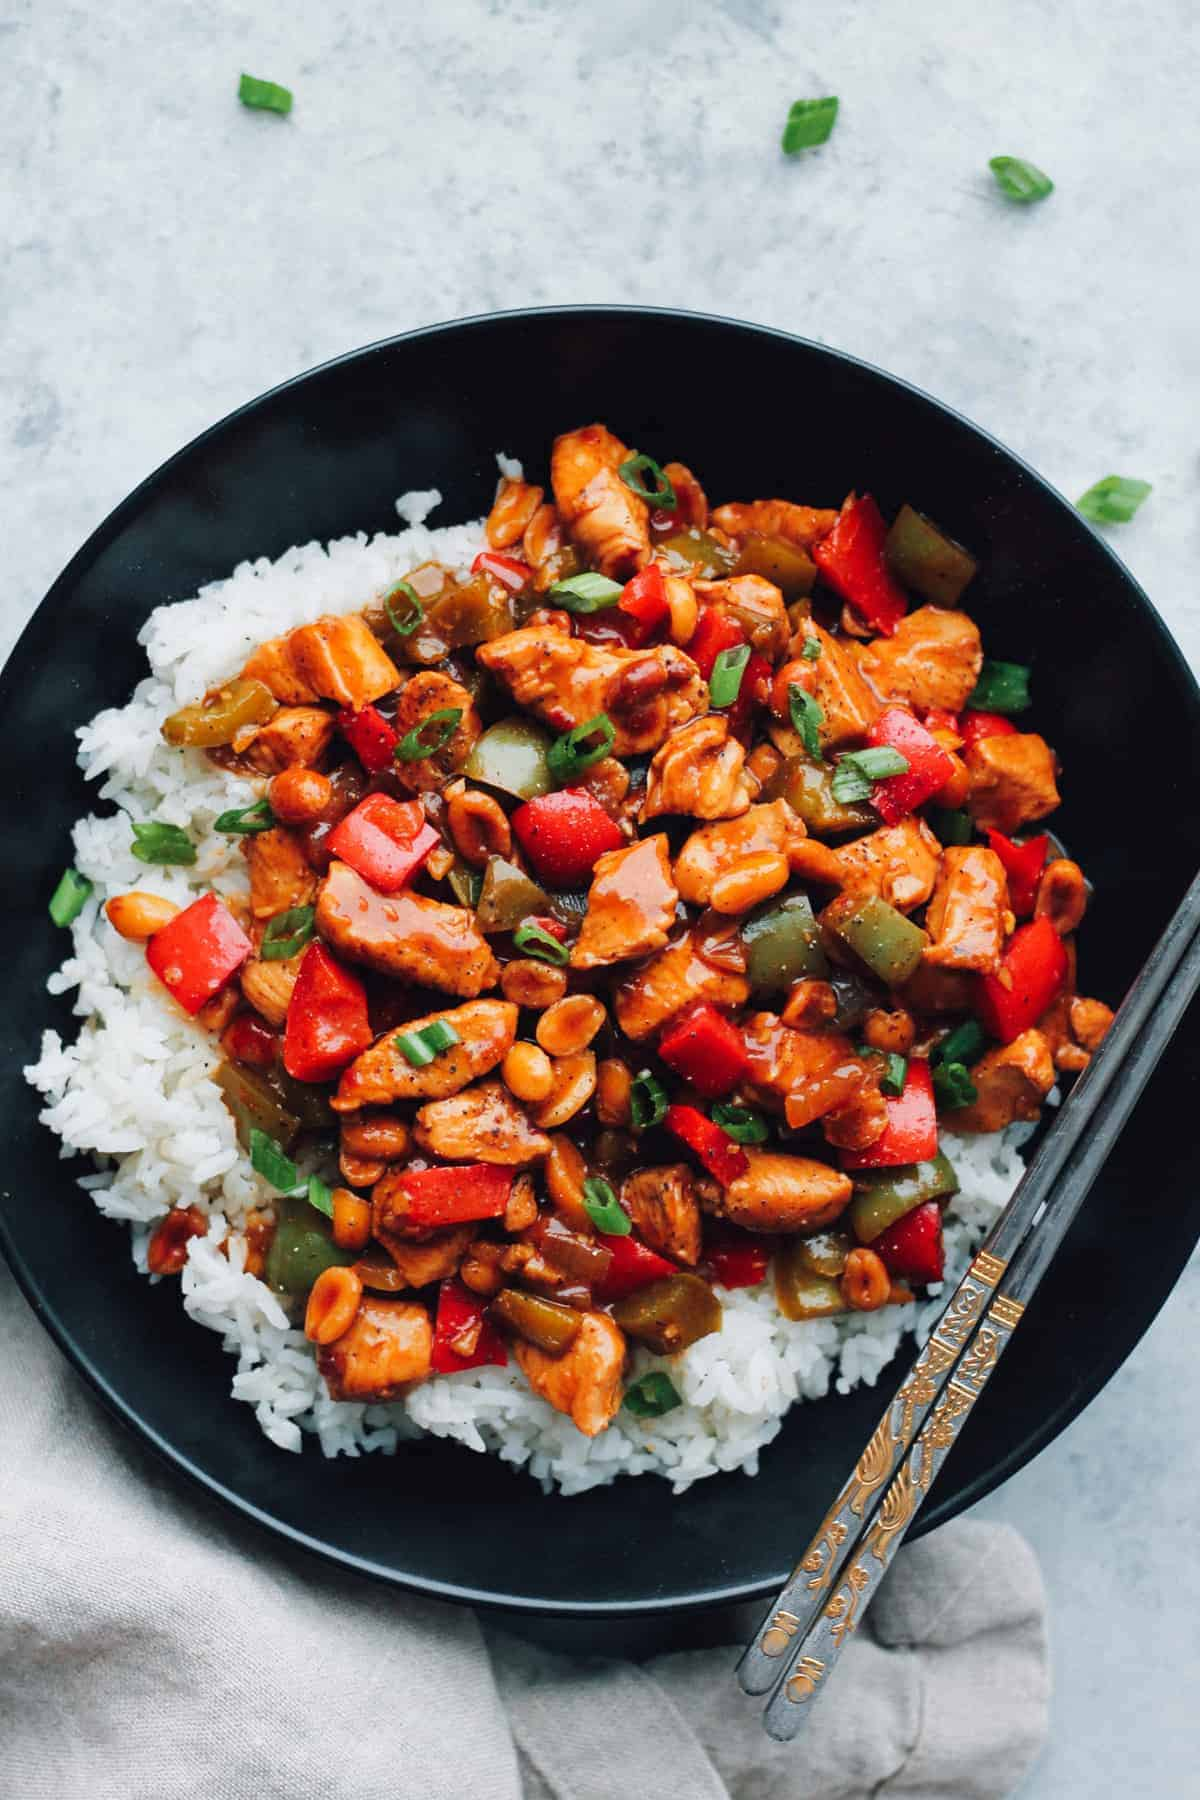 kung pao chicken recipe in bowl